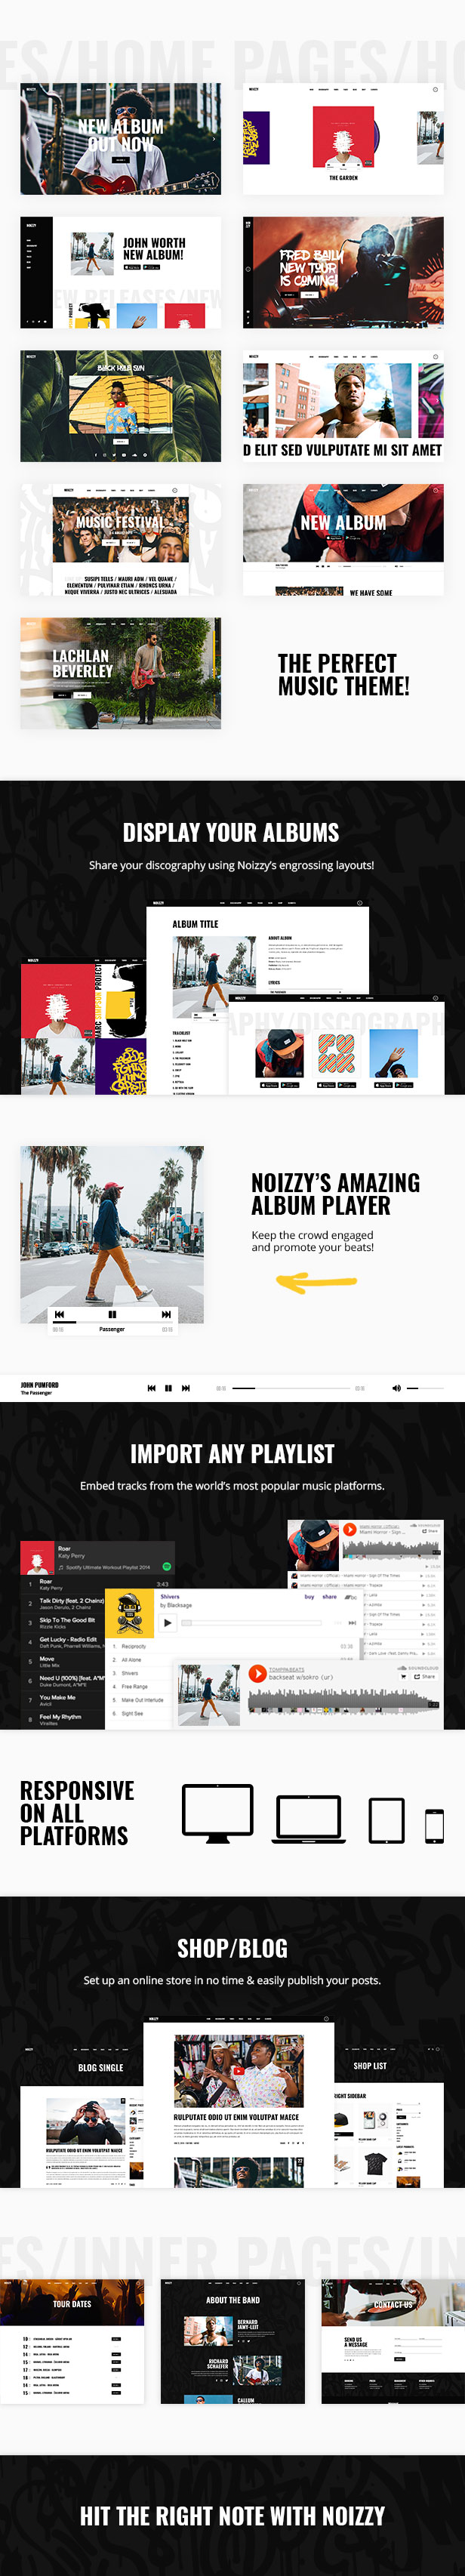 Noizzy - WordPress theme for the music band - 1